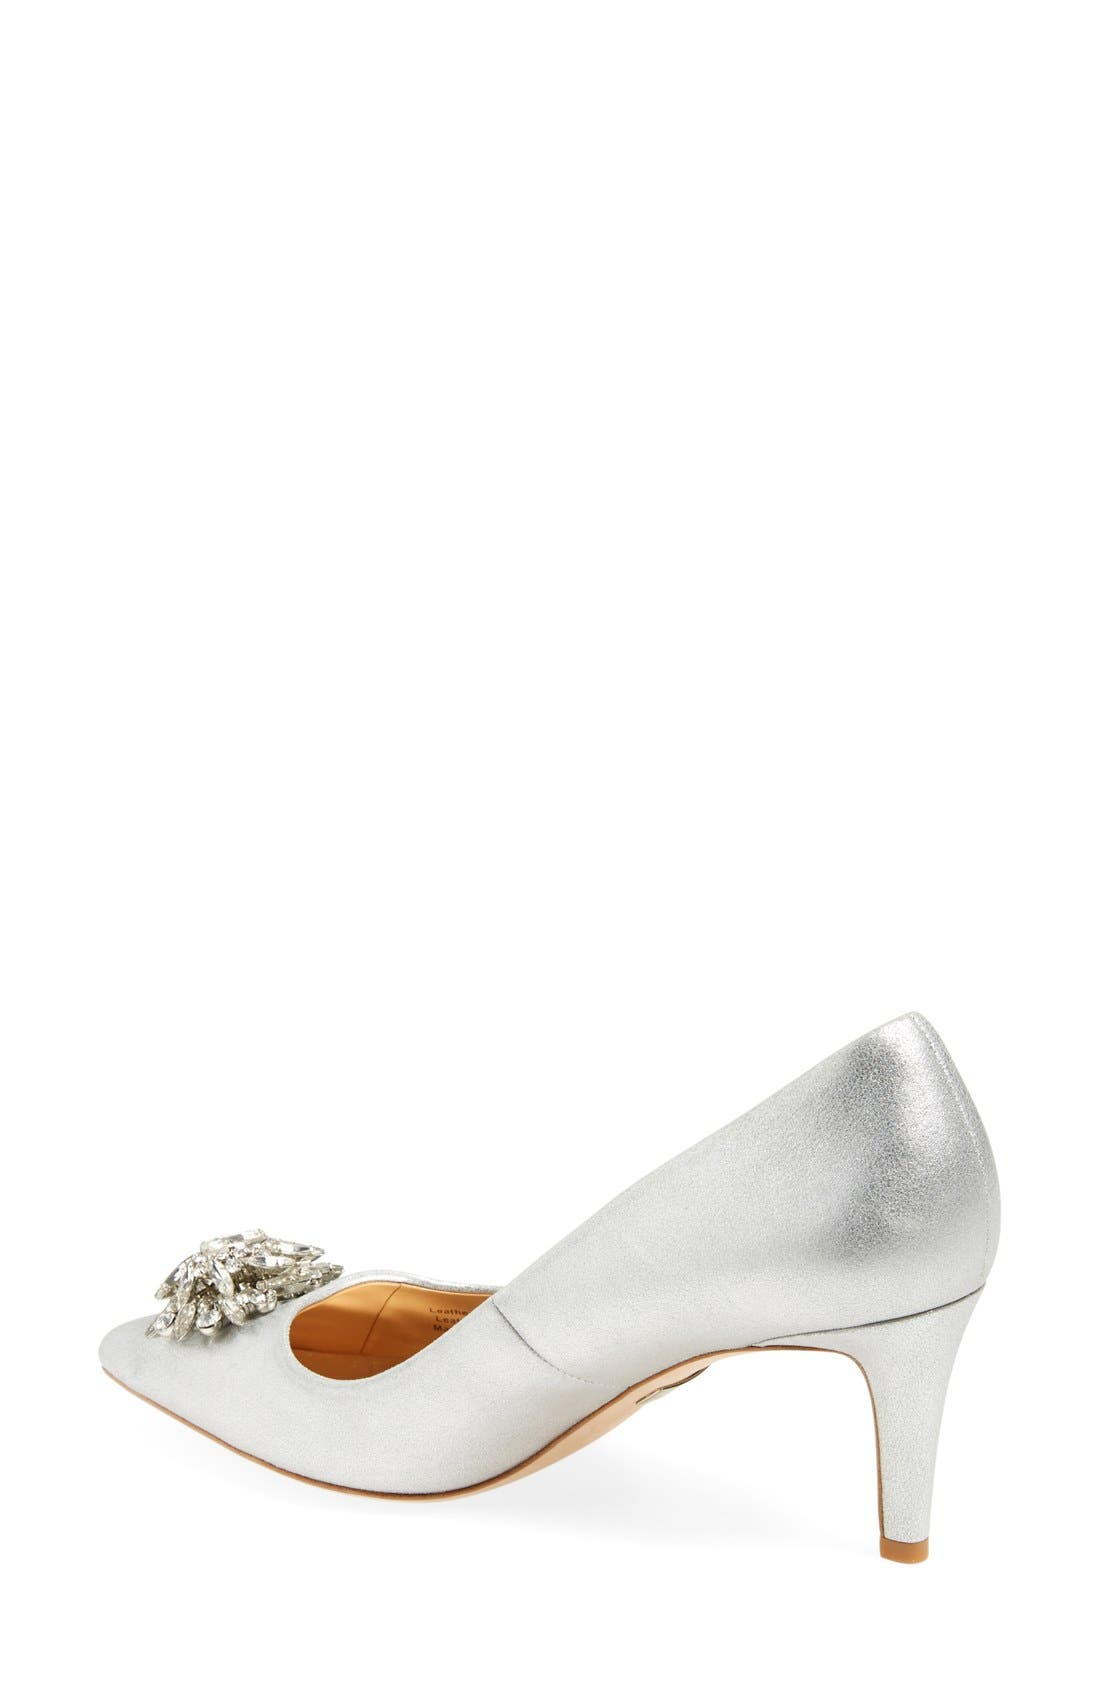 Alternate Image 2  - Badgley Mischka 'Gardenia' Pointy Toe Pump (Women)